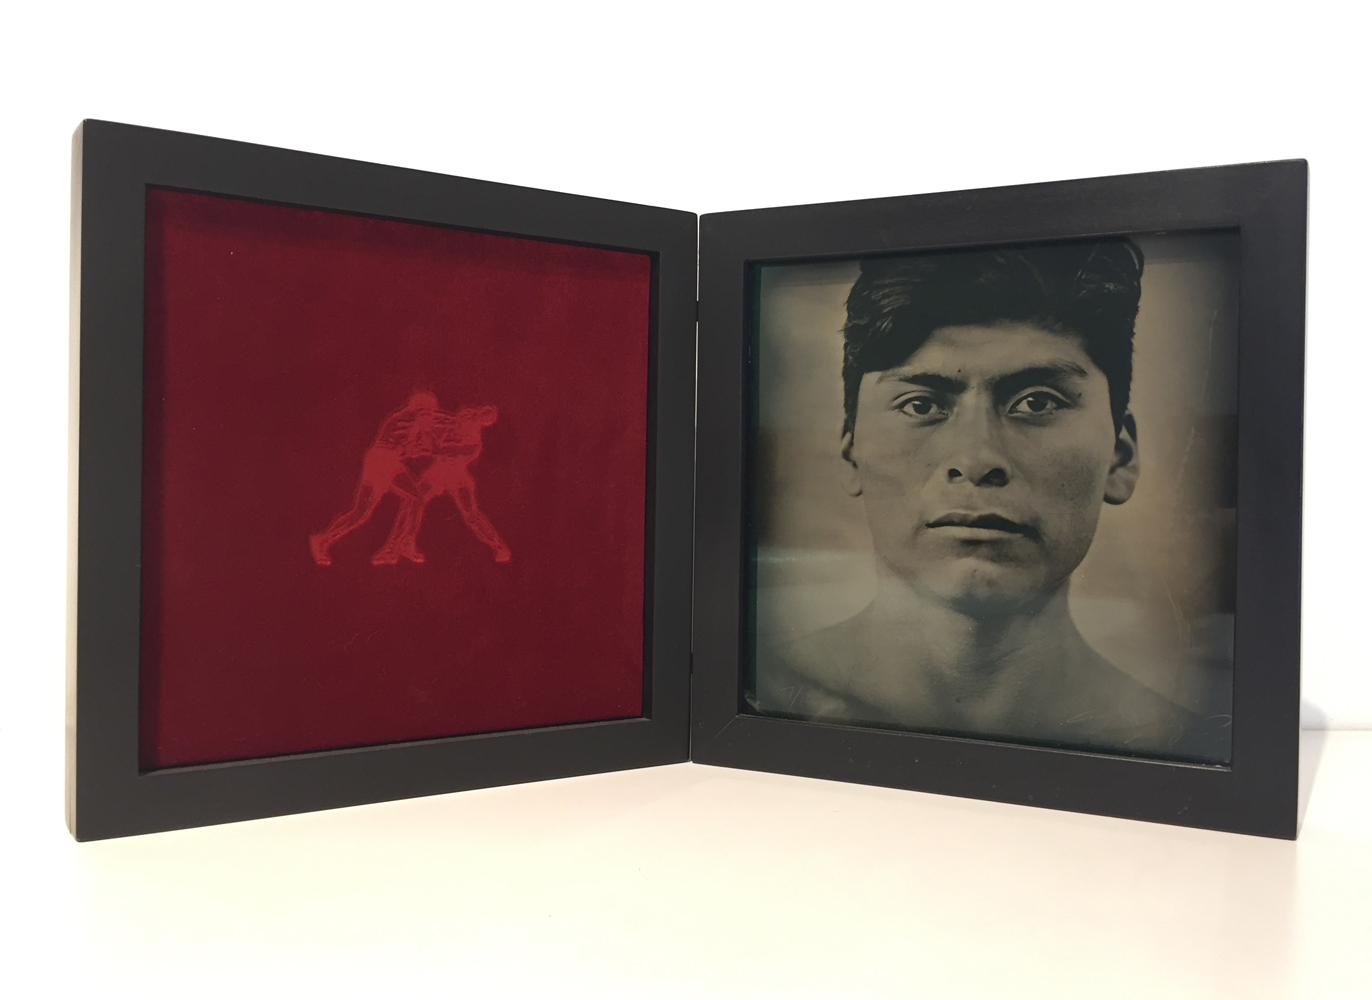 Luis Gonzalez Palma, Destinos, 2000, ambrotype, 9.25 x 9.25 x 2 inches, edition 7/10, price on request